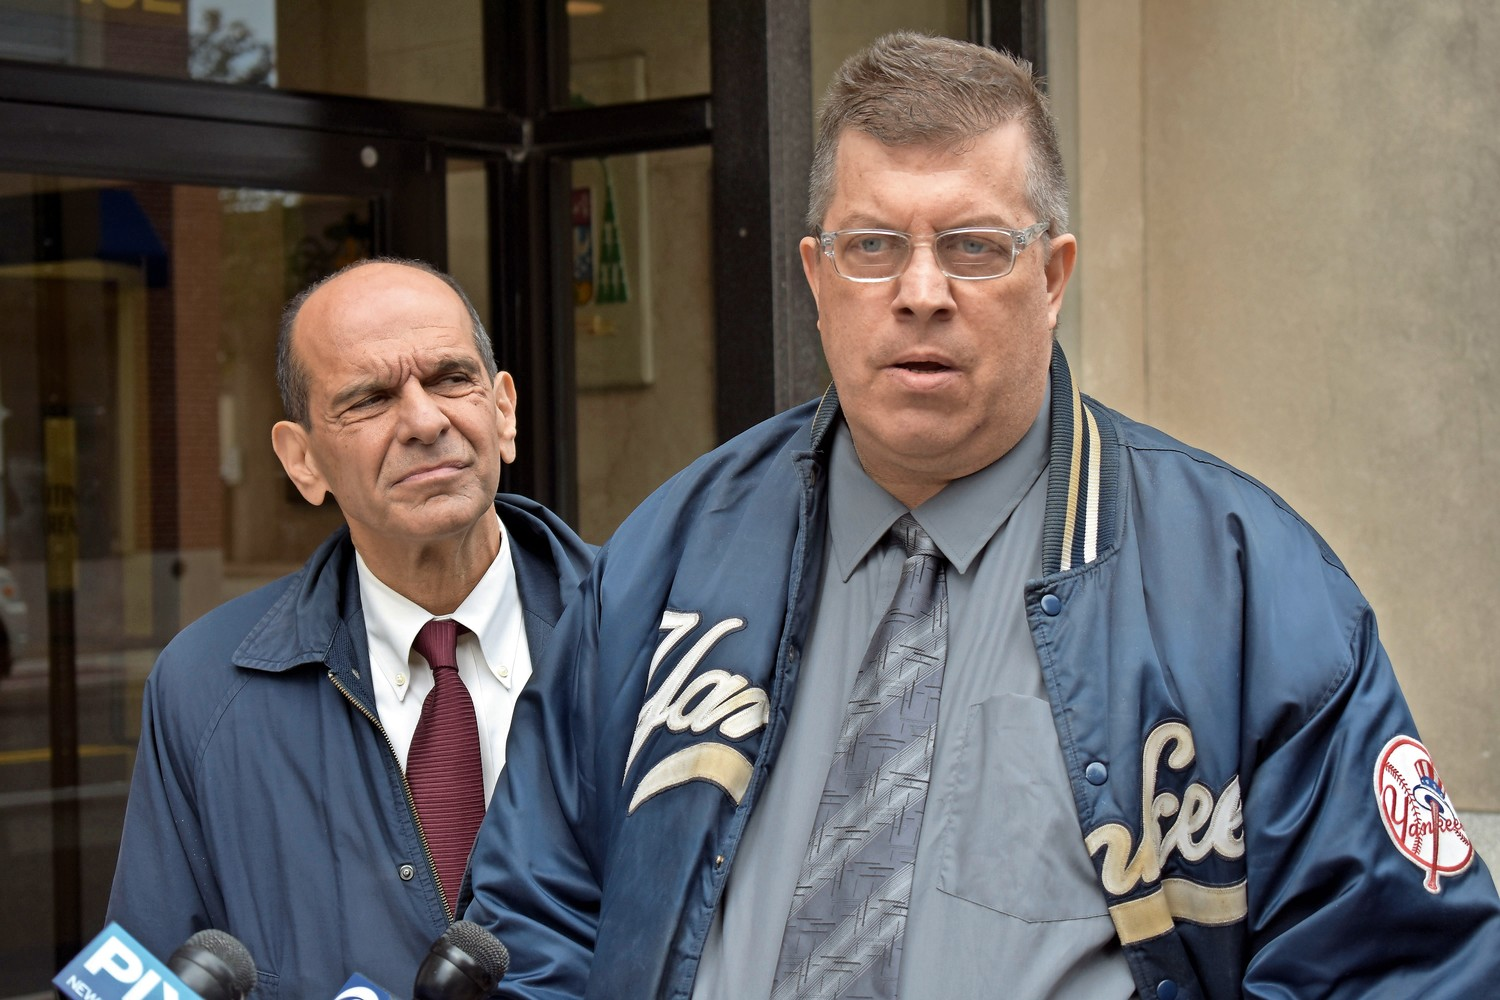 Thomas McGarvey, right, outside the Diocese of Rockville Centre's headquarters last October, received $500,000 through the Independent Reconciliation and Compensation Program. Boston attorney Mitchell Garabedian, left, represented him.